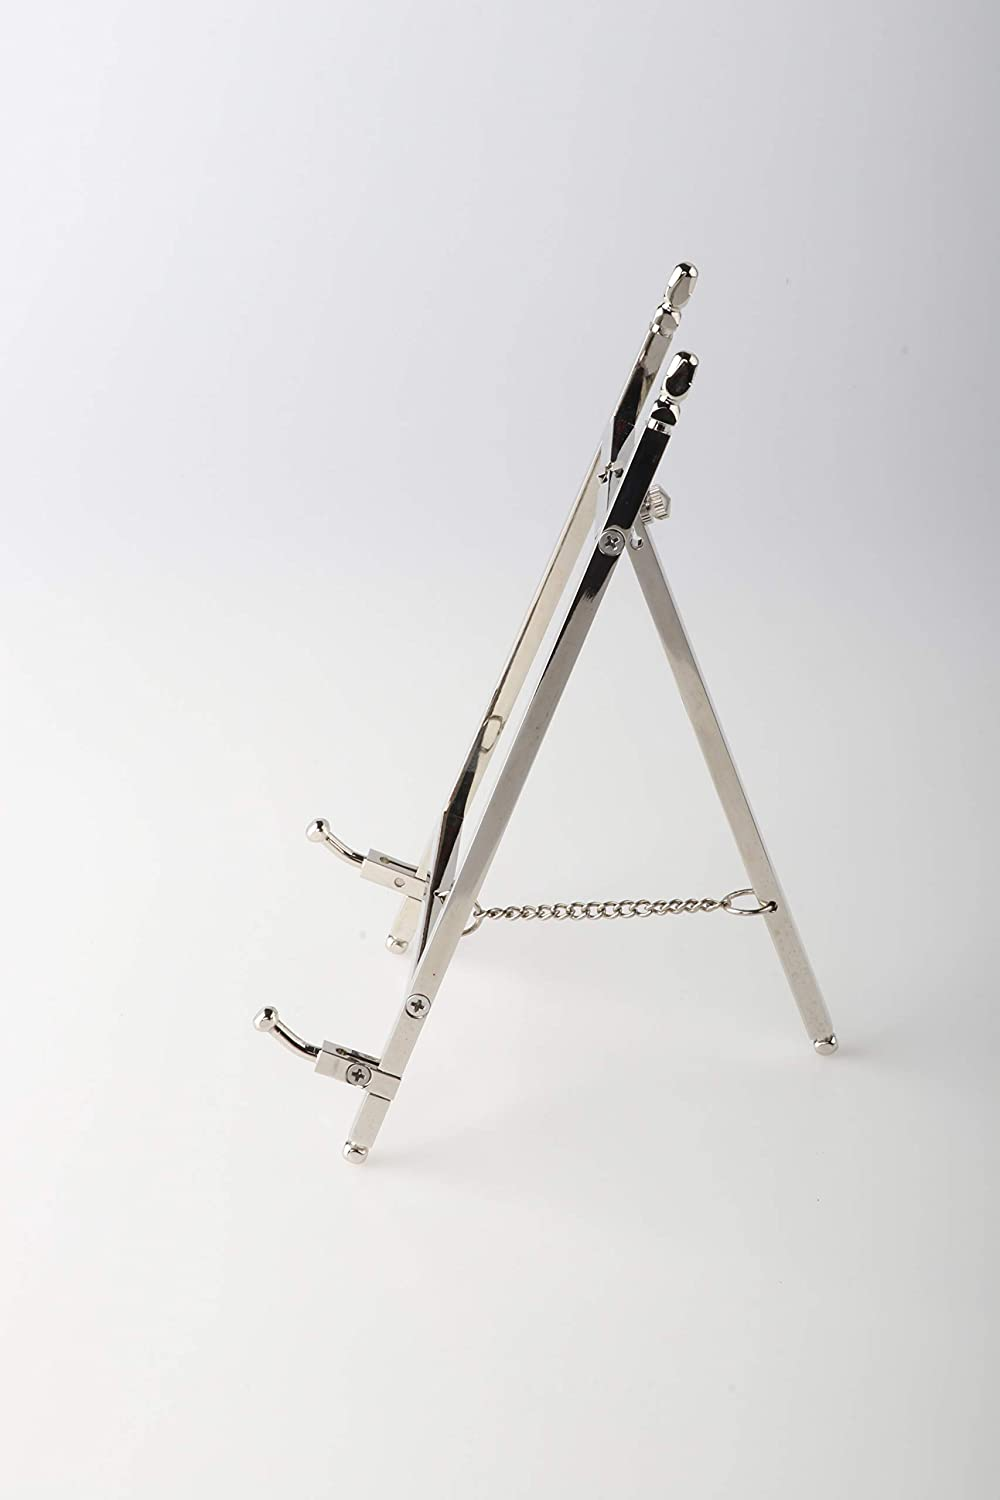 malleable Table Top Easel,Brass Plate Stands for Display,6 Inch,150MM